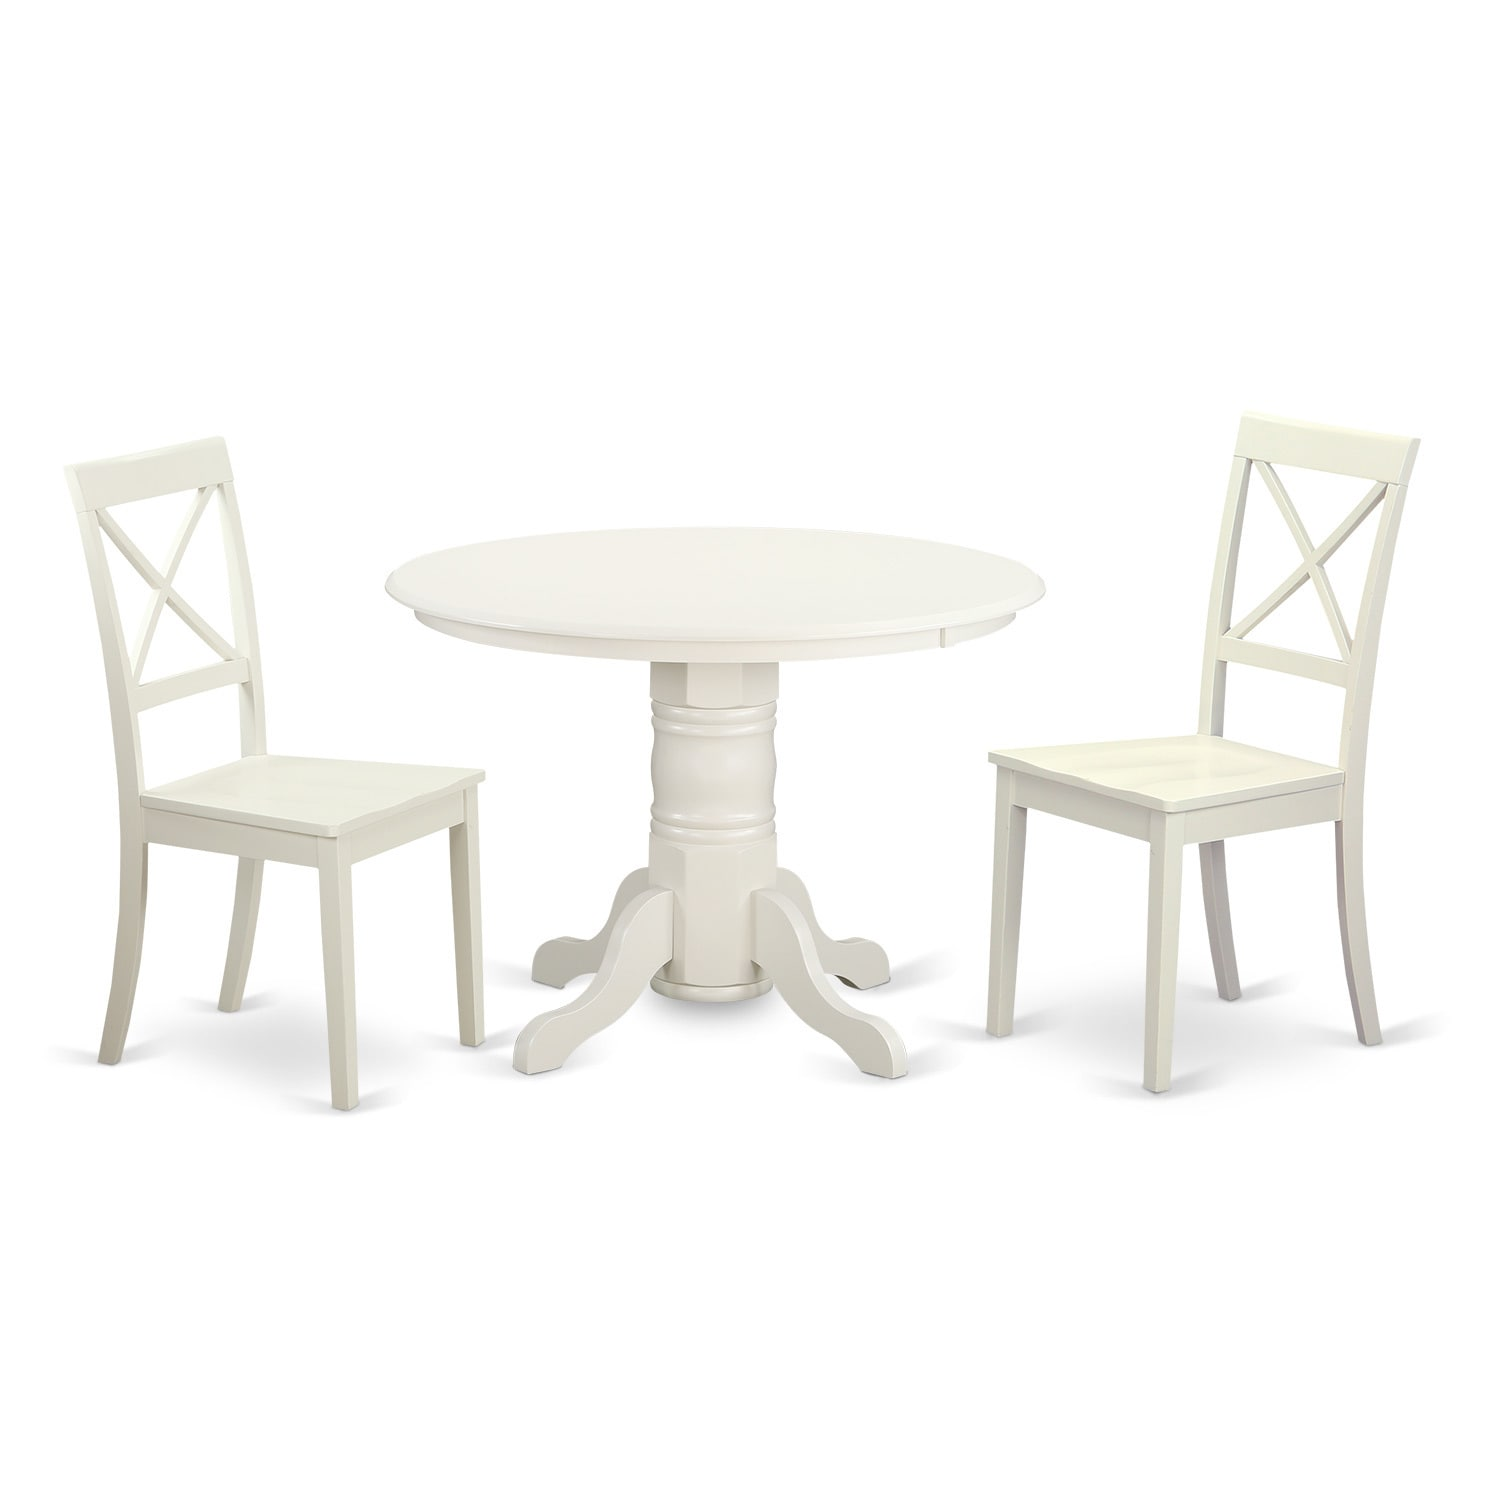 3-piece Wooden White Finish Dining Room Set with Round Pe...